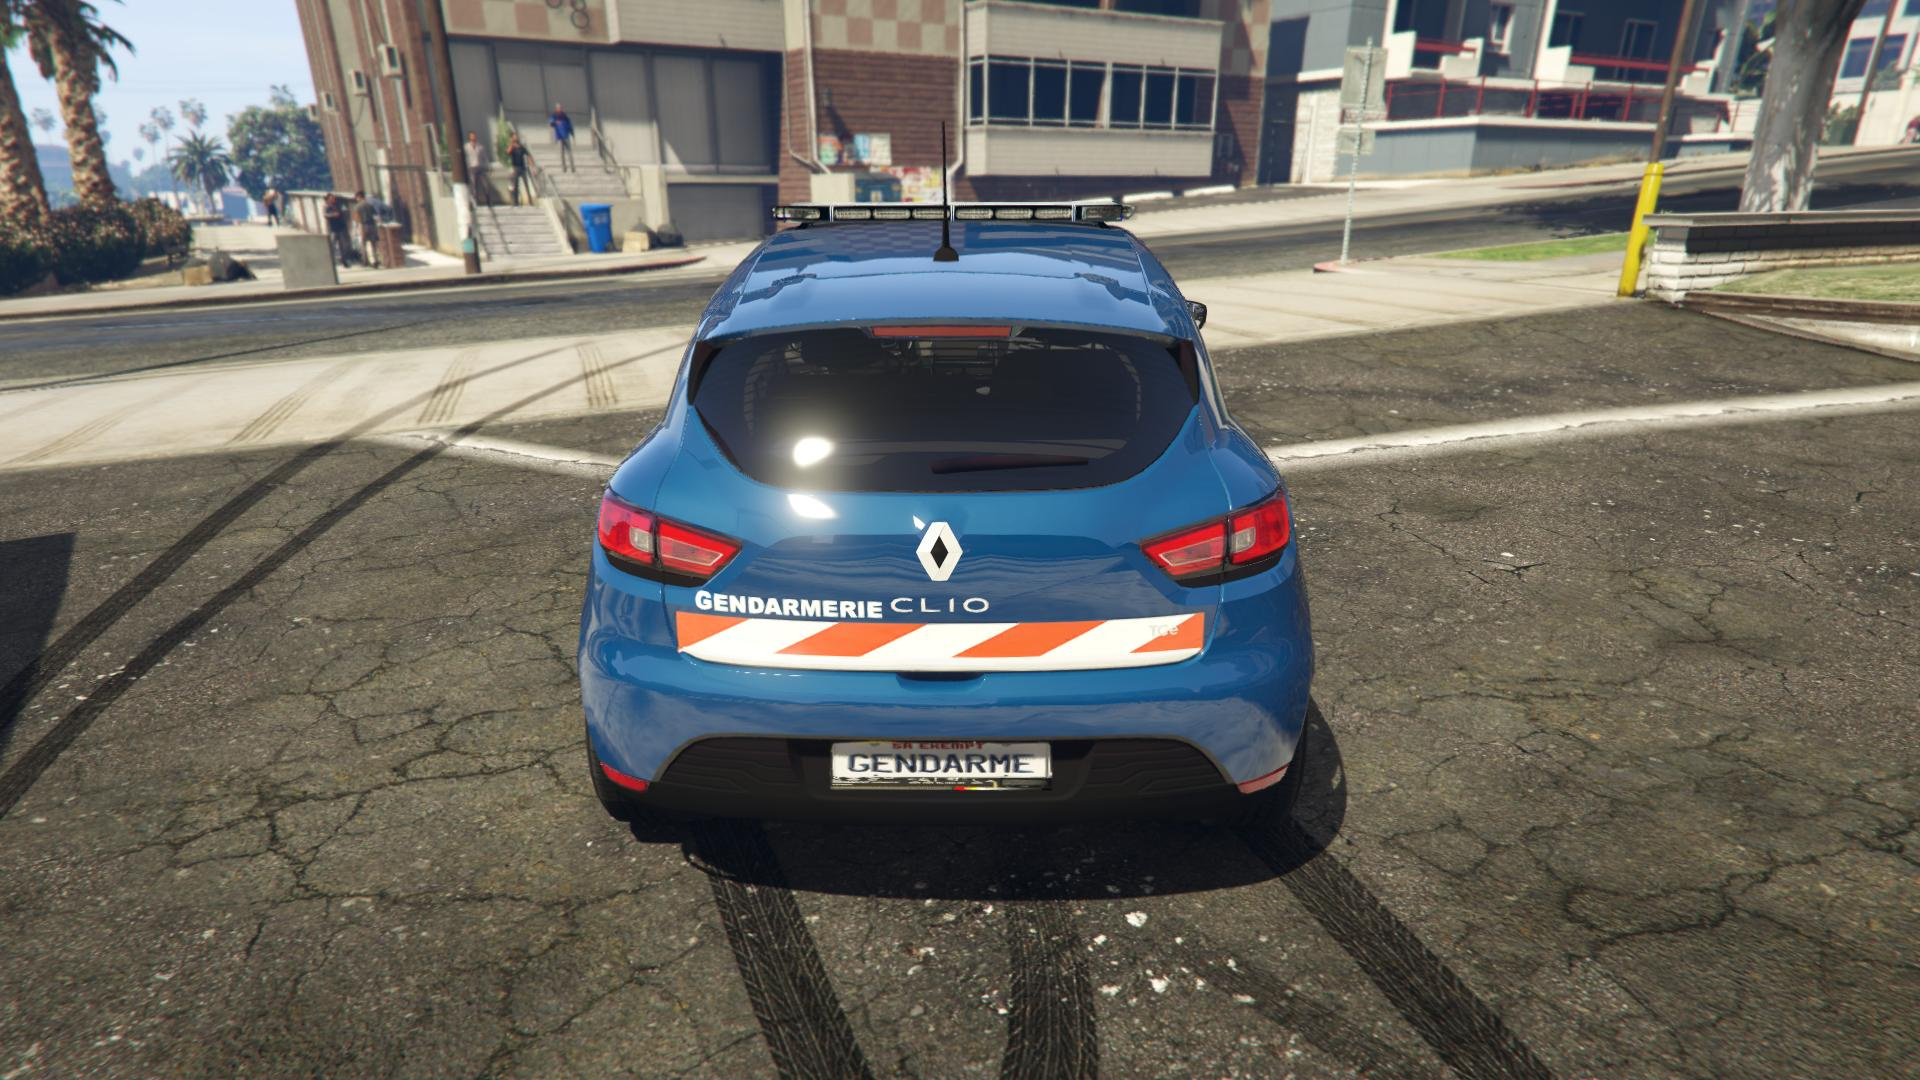 renault clio gendarmerie bande rouge gta5. Black Bedroom Furniture Sets. Home Design Ideas